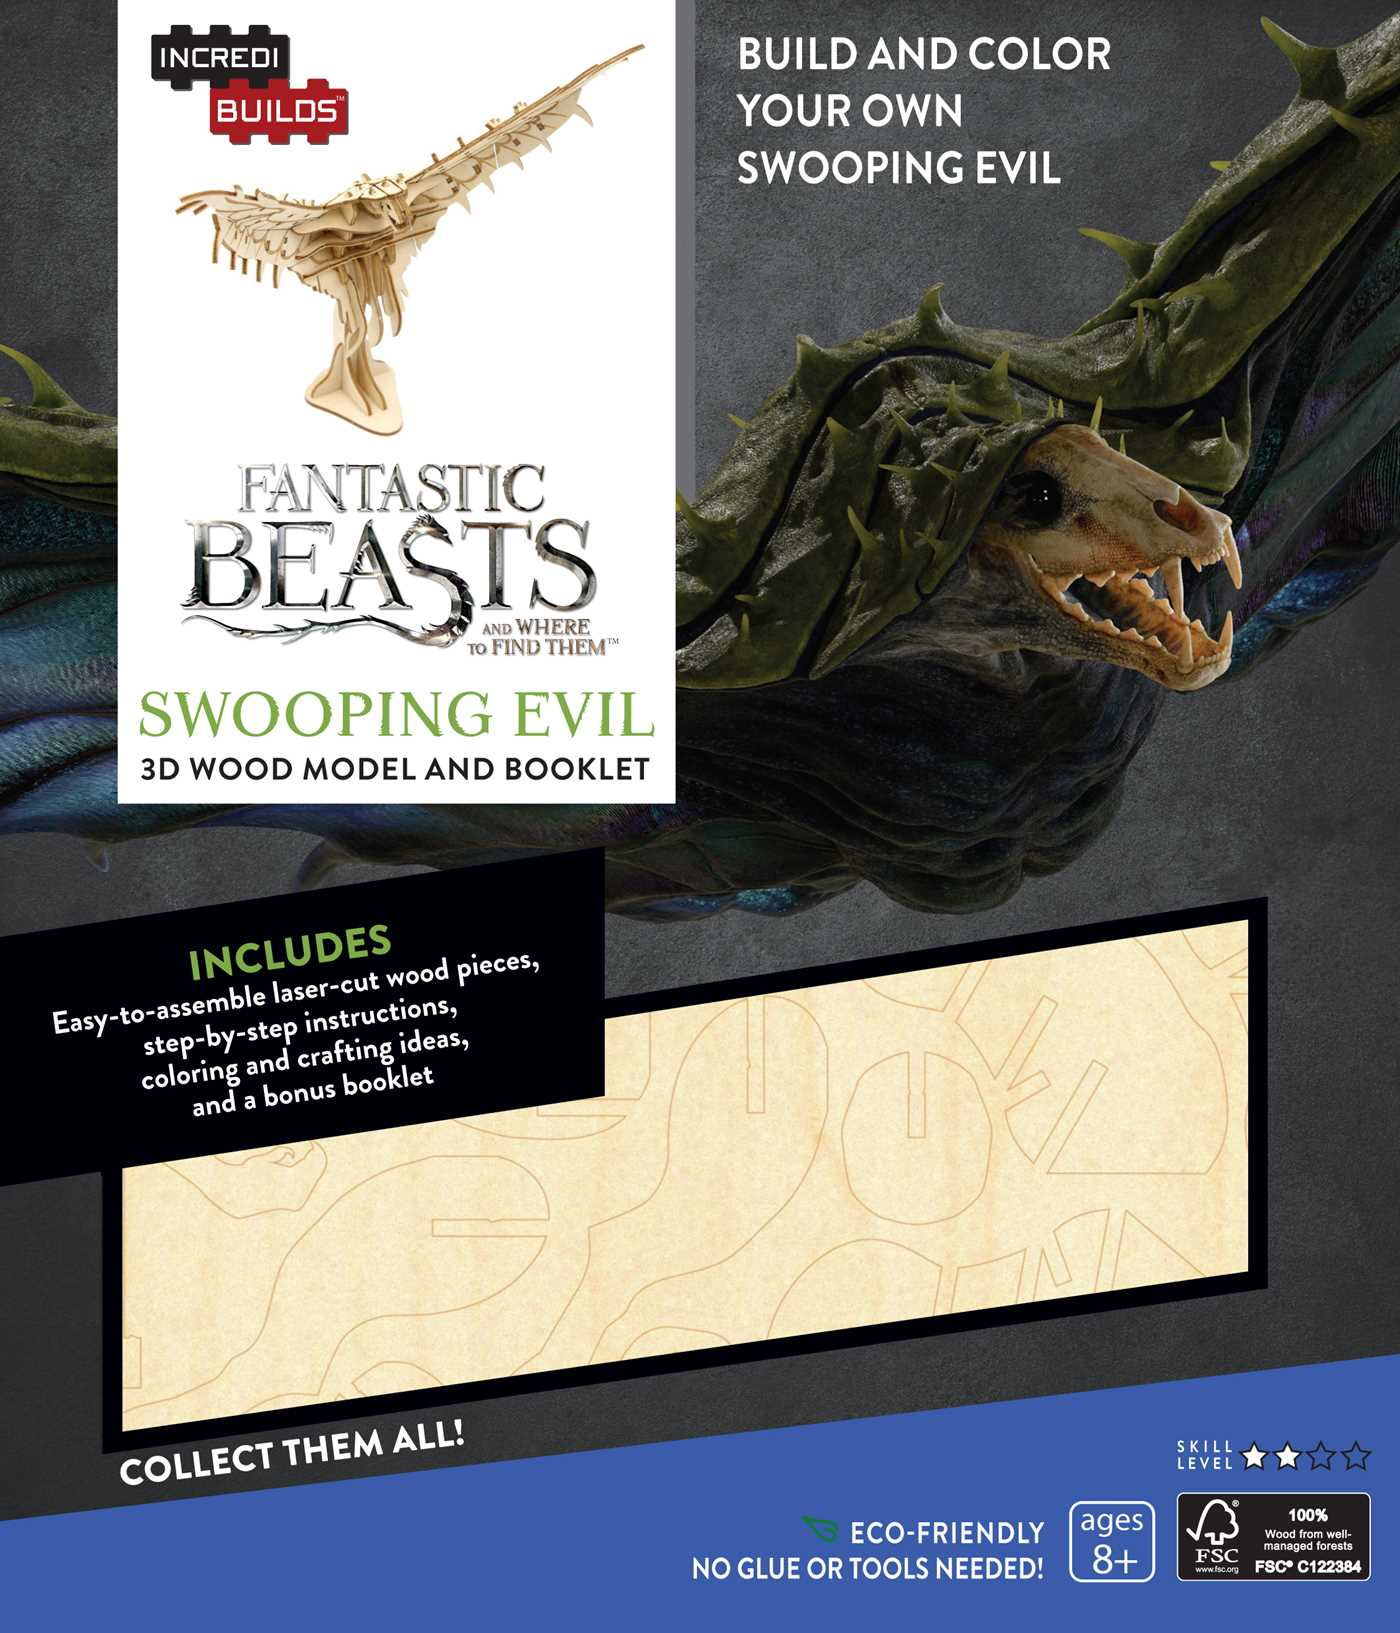 Incredibuilds fantastic beasts and where to find them swooping evil 3d wood model and booklet 9781682980606 hr